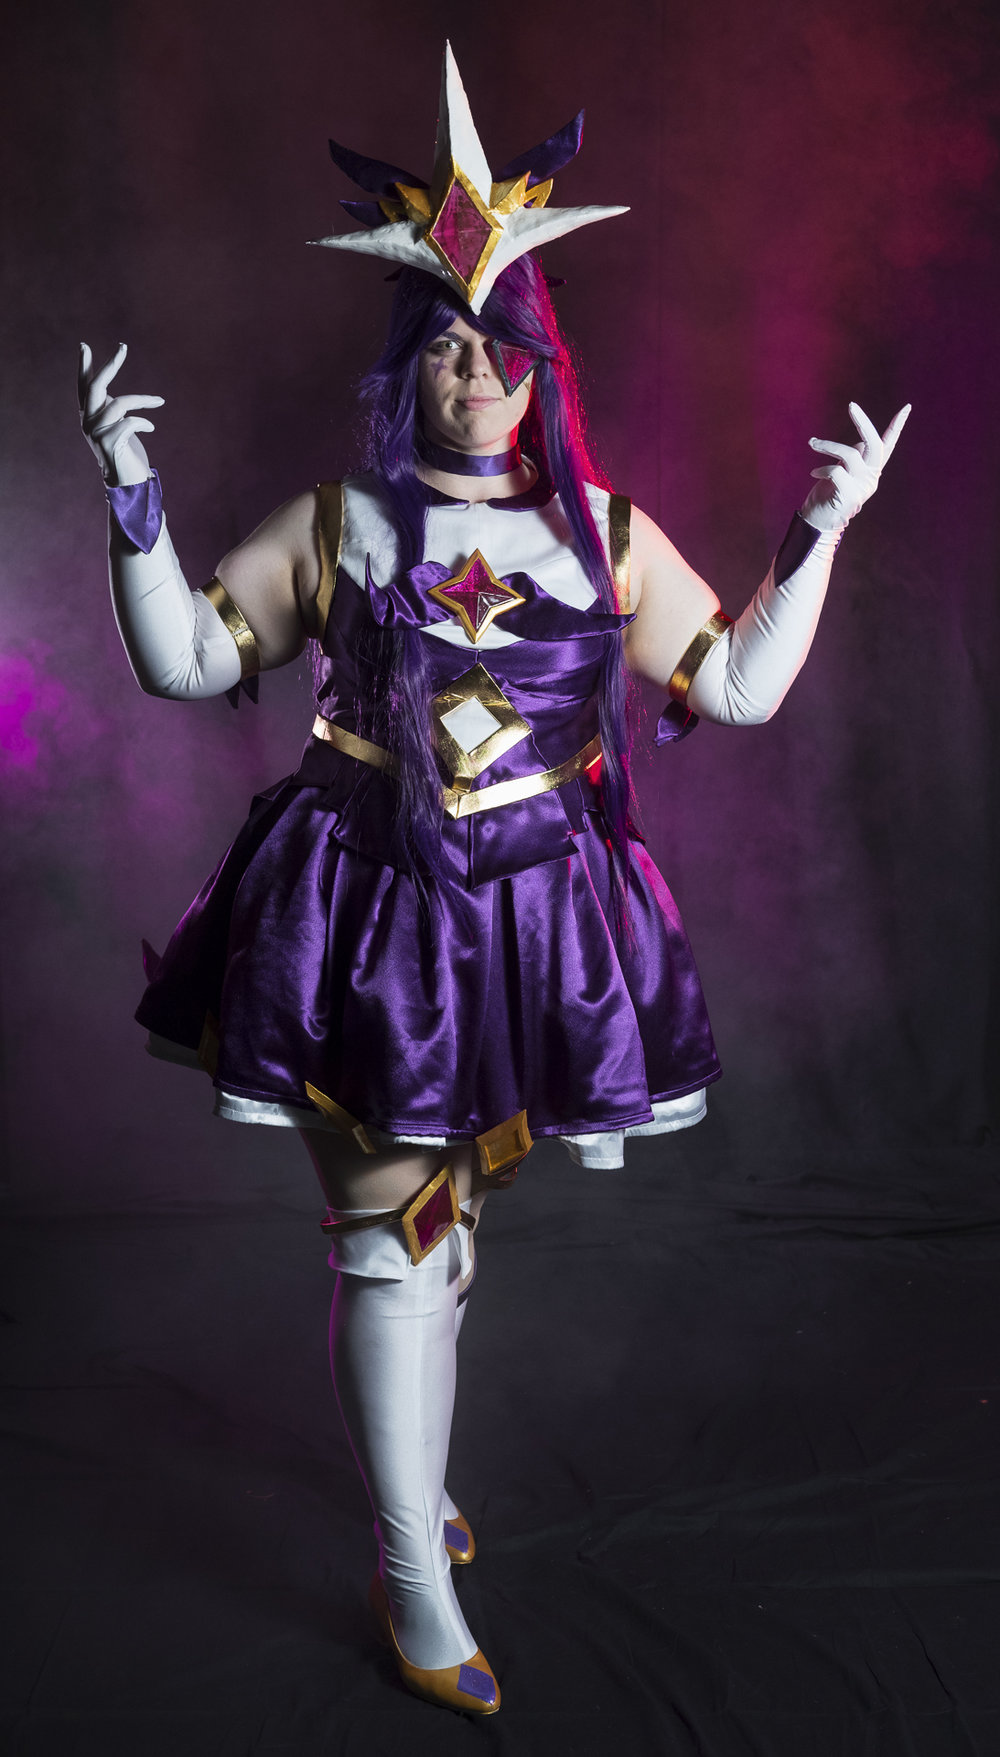 Tacocat Cosplay in Star Guardian Syndra cosplay at Soundcheck Austin